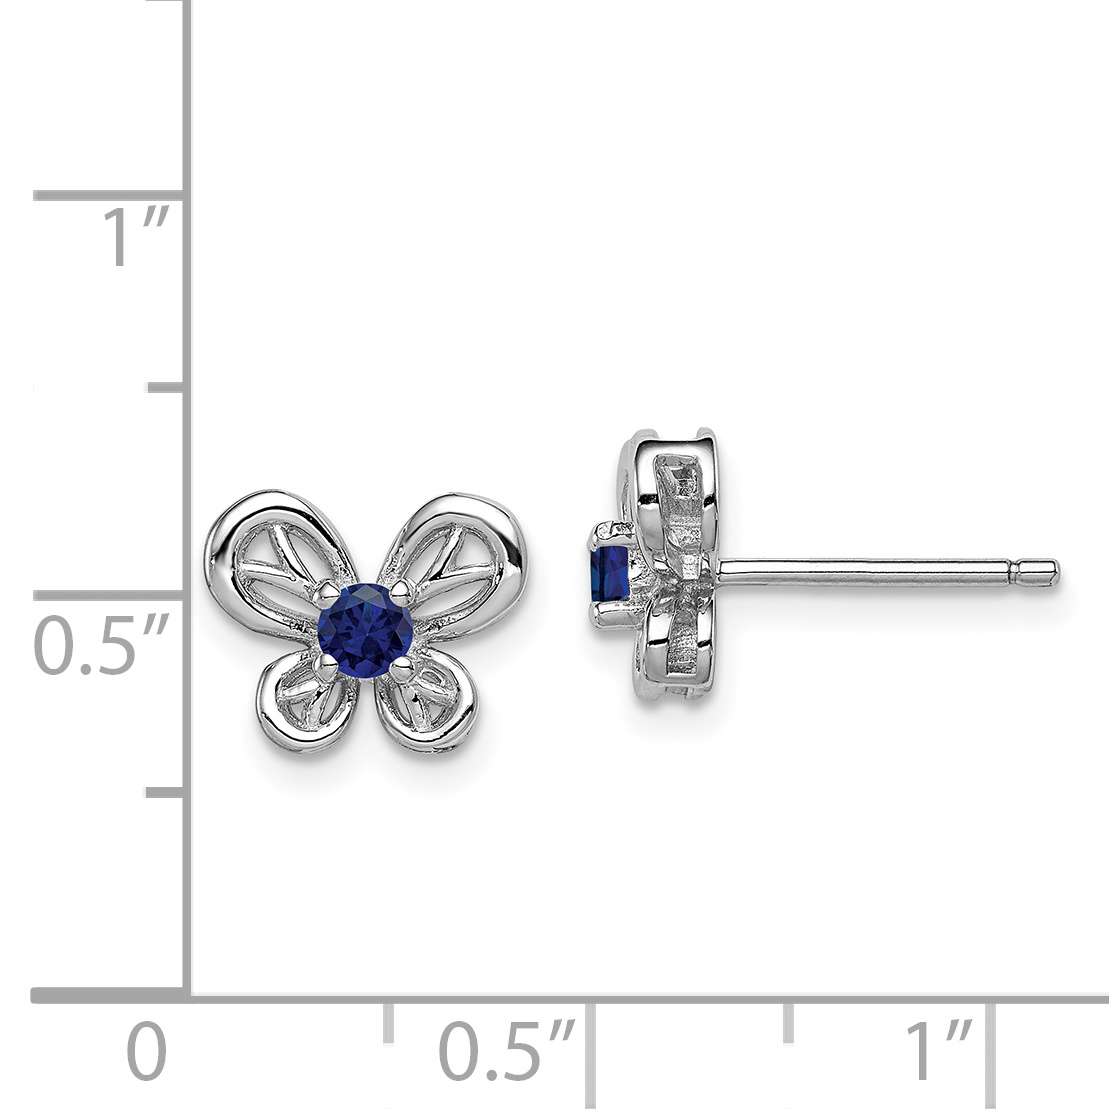 925 Sterling Silver Created Sapphire Post Stud Earrings Set Birthstone September Bow Fine Jewelry Gifts For Women For Her - image 1 de 2